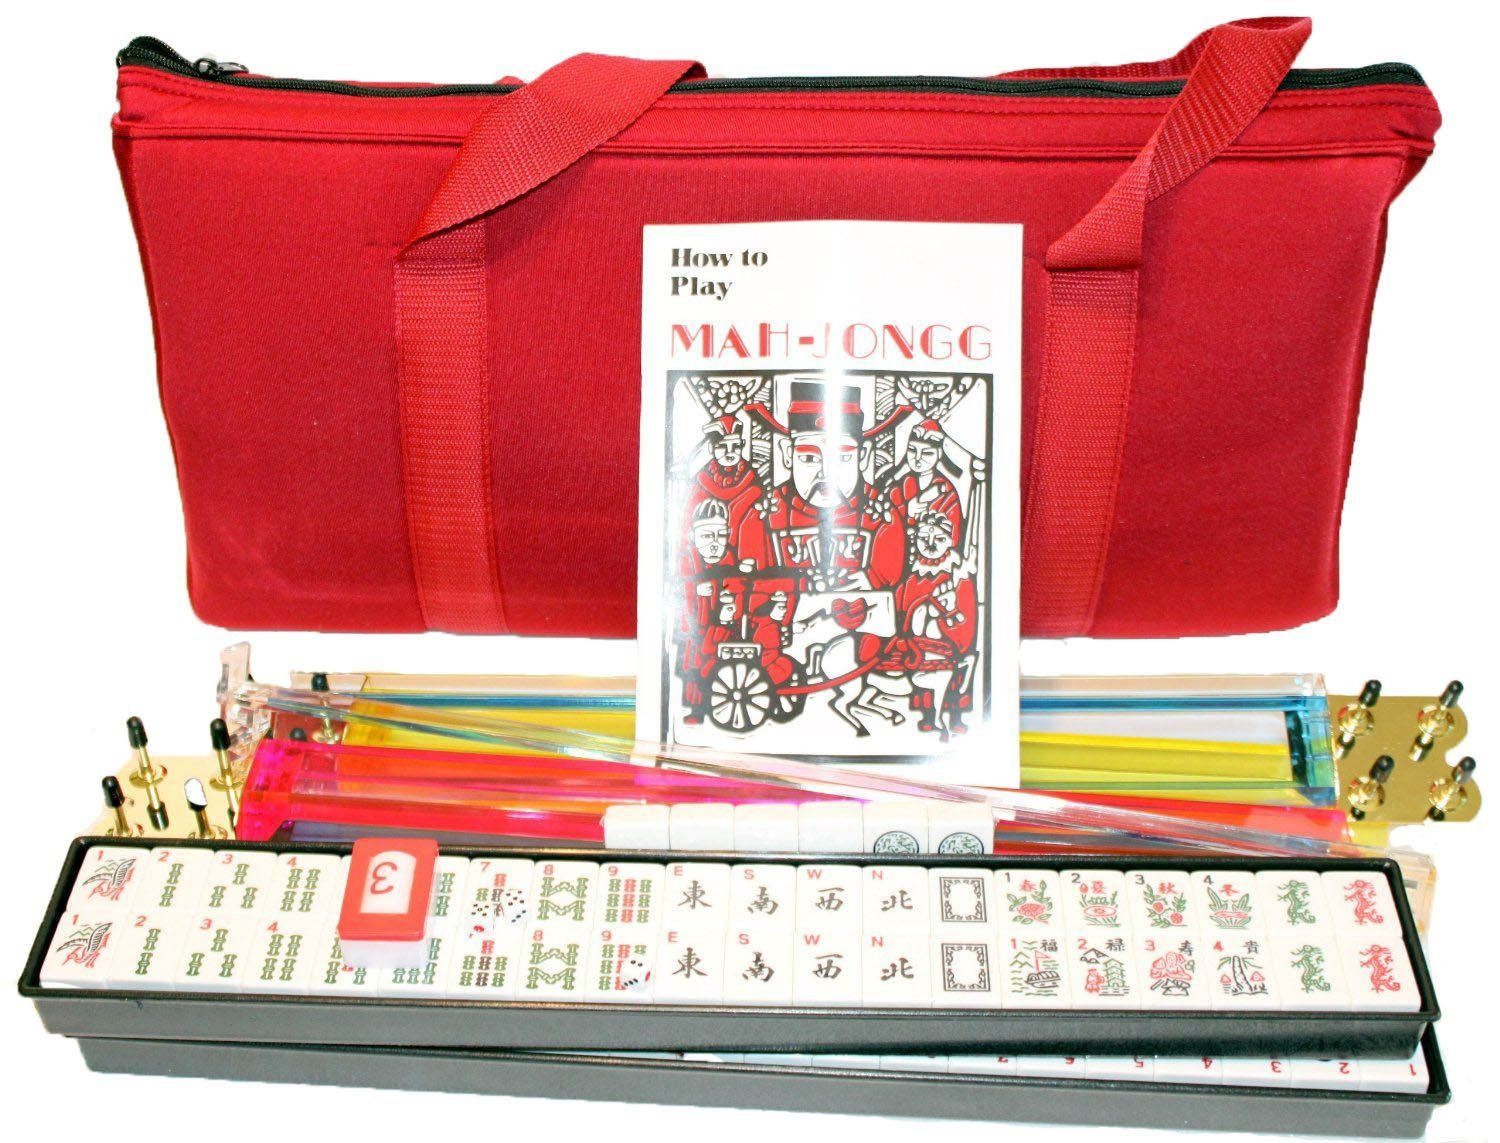 Amazon.com: 4 Pushers + Brand New Complete American Mahjong Set in Burgundy Bag , 166 Tiles(mah Jong Mah Jongg Mahjongg): Toys & Games